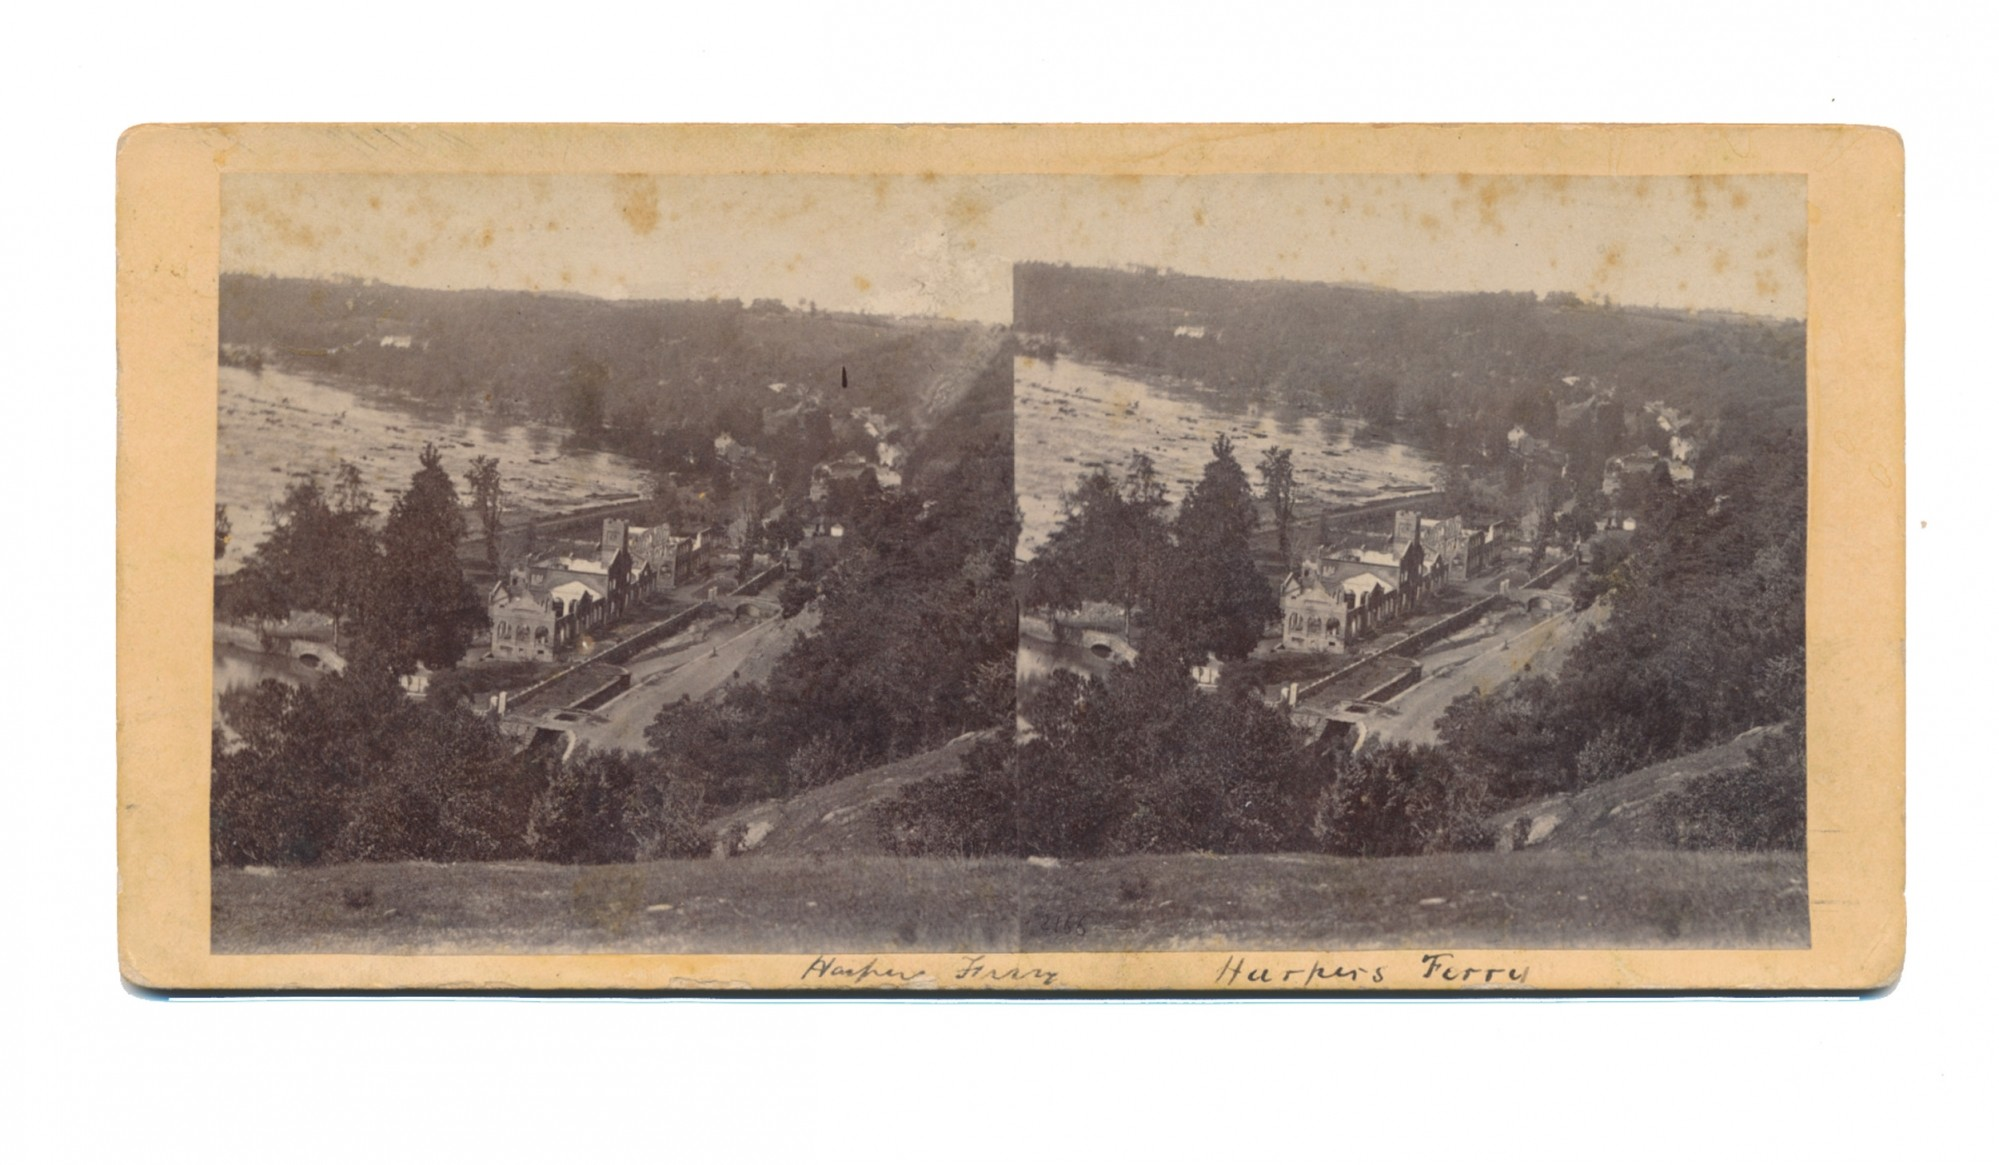 STEREOVIEW CARD OF HARPER'S FERRY DURING CIVIL WAR